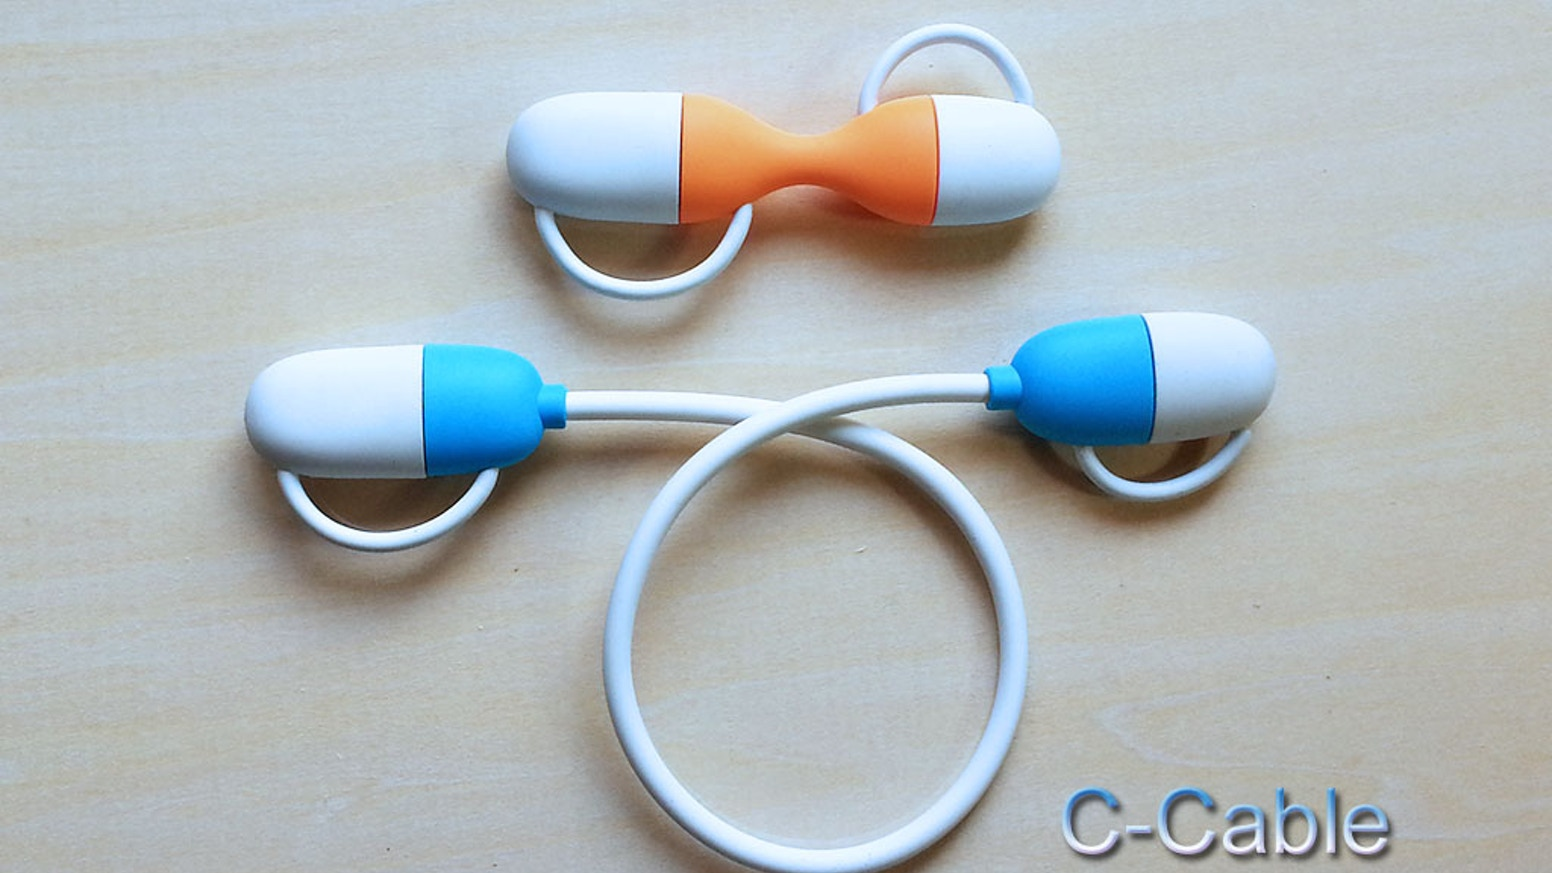 C-Cable: The multi-functional capsule cable you ever need by aniFree ...